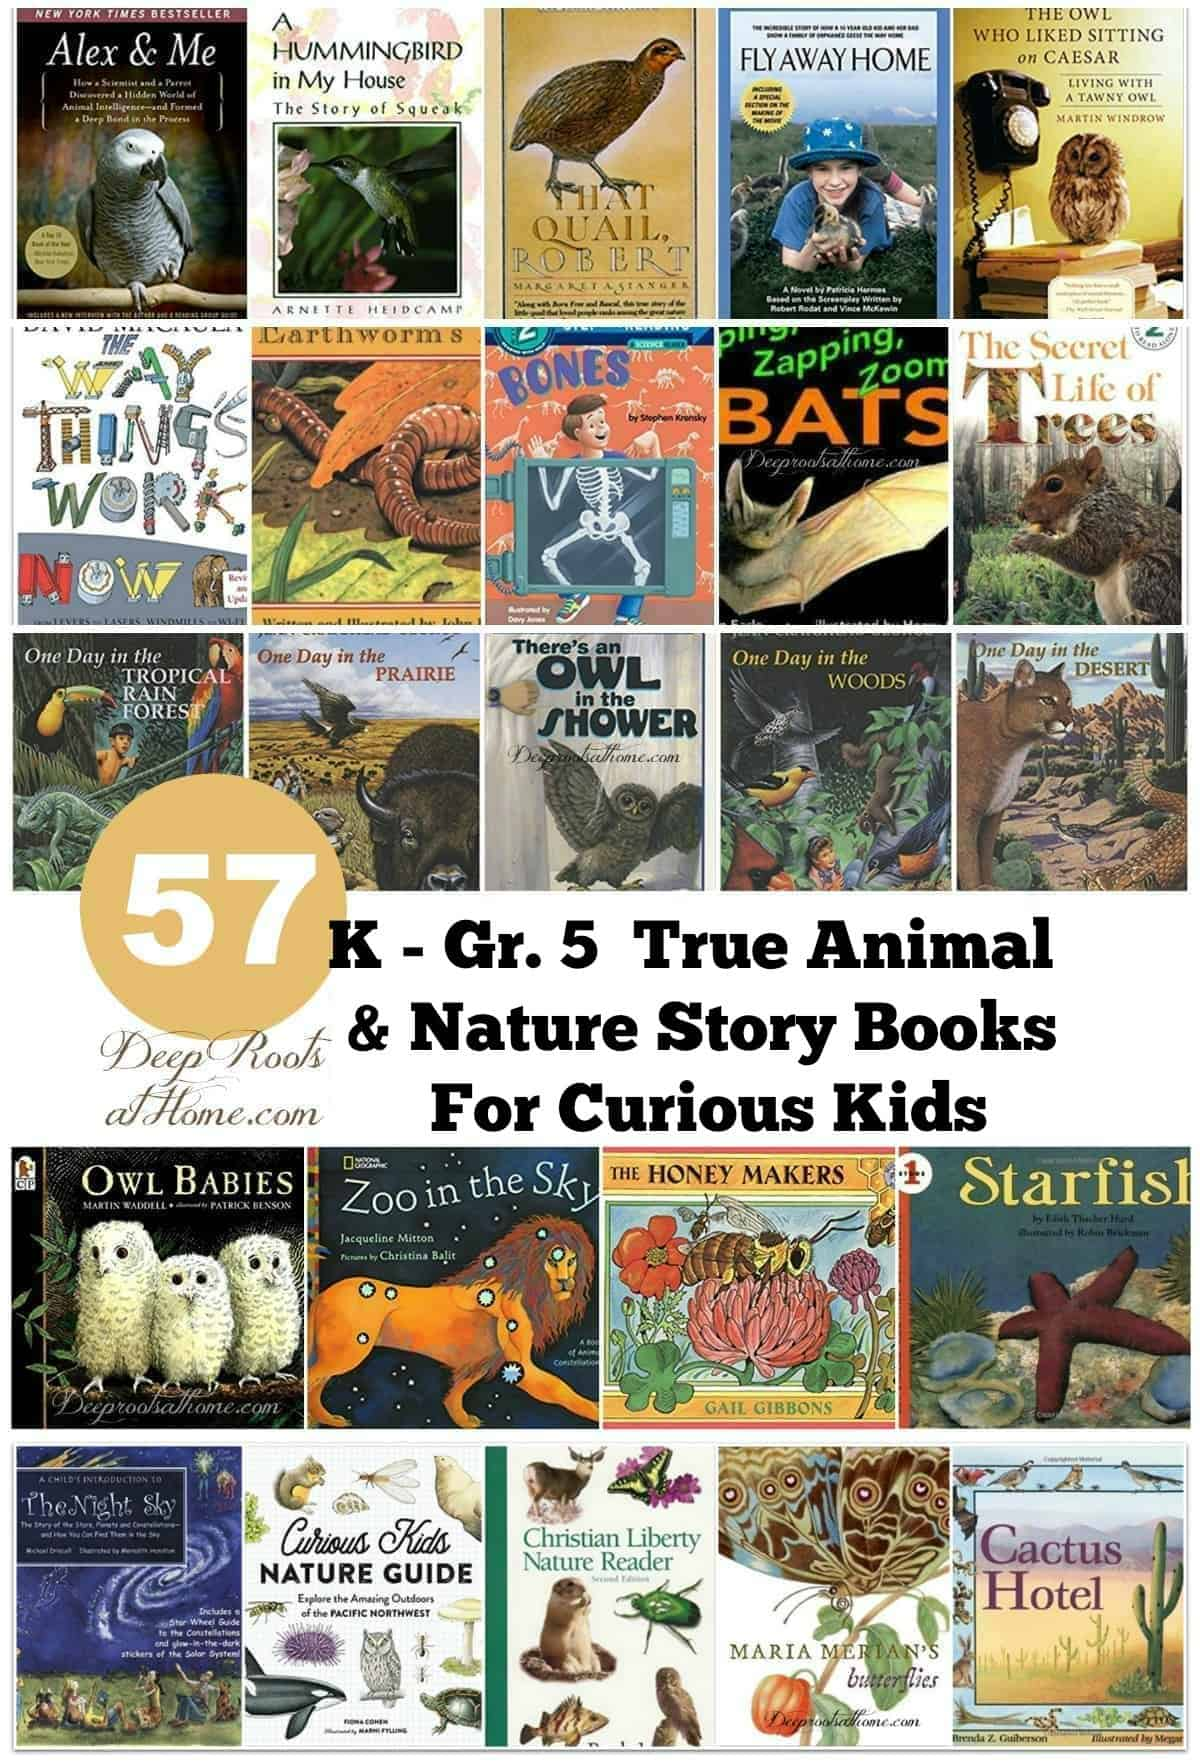 57 K - Gr. 5 True Animal & Nature Story Books For Curious Kids. The covers of 24 different nature and science books.